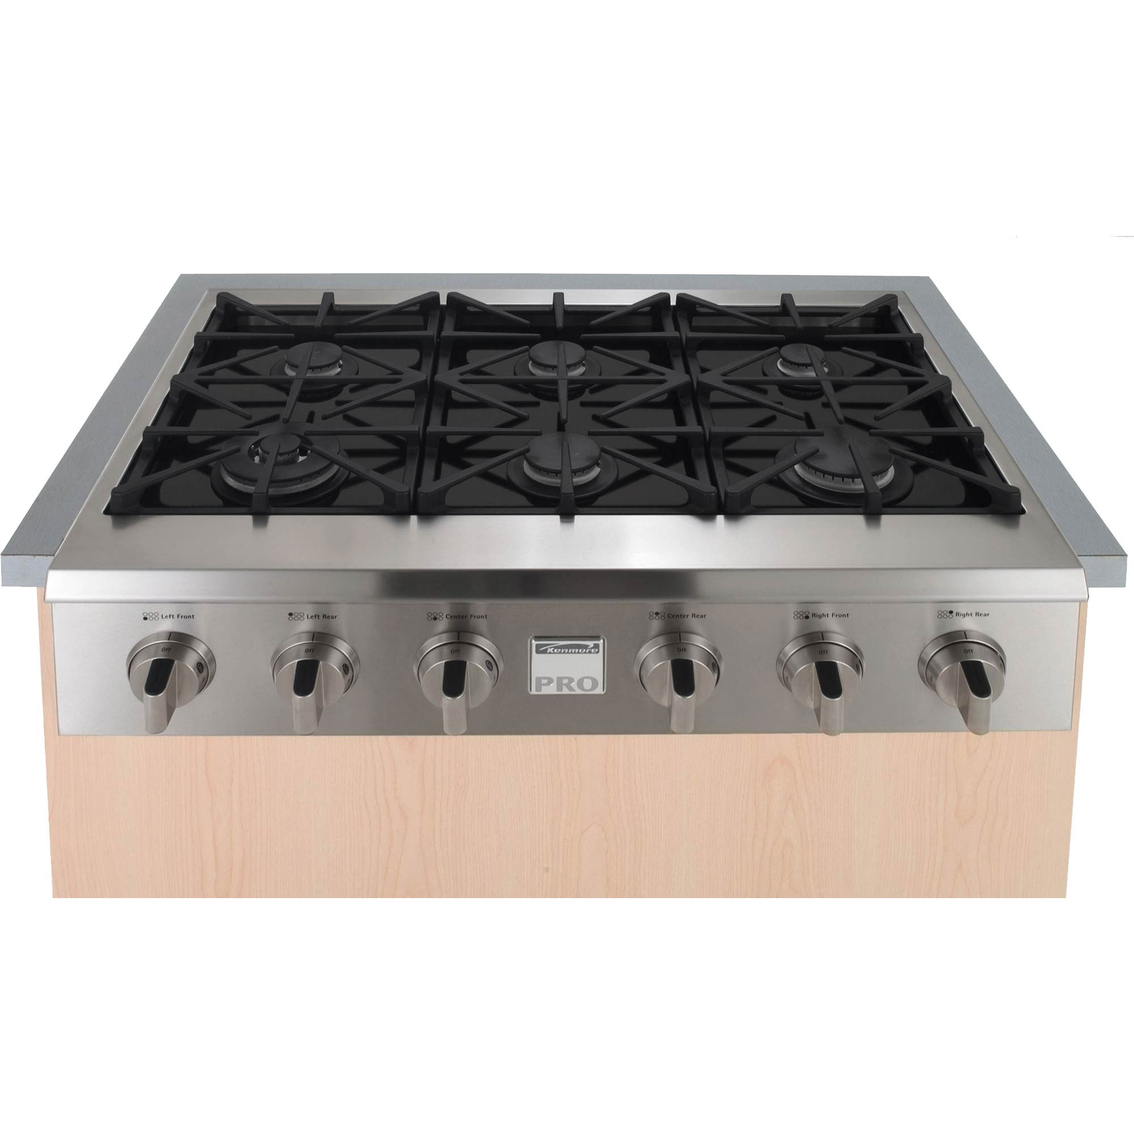 Kenmore Pro 36 In. Slide-in Ceramic Glass Gas Cooktop